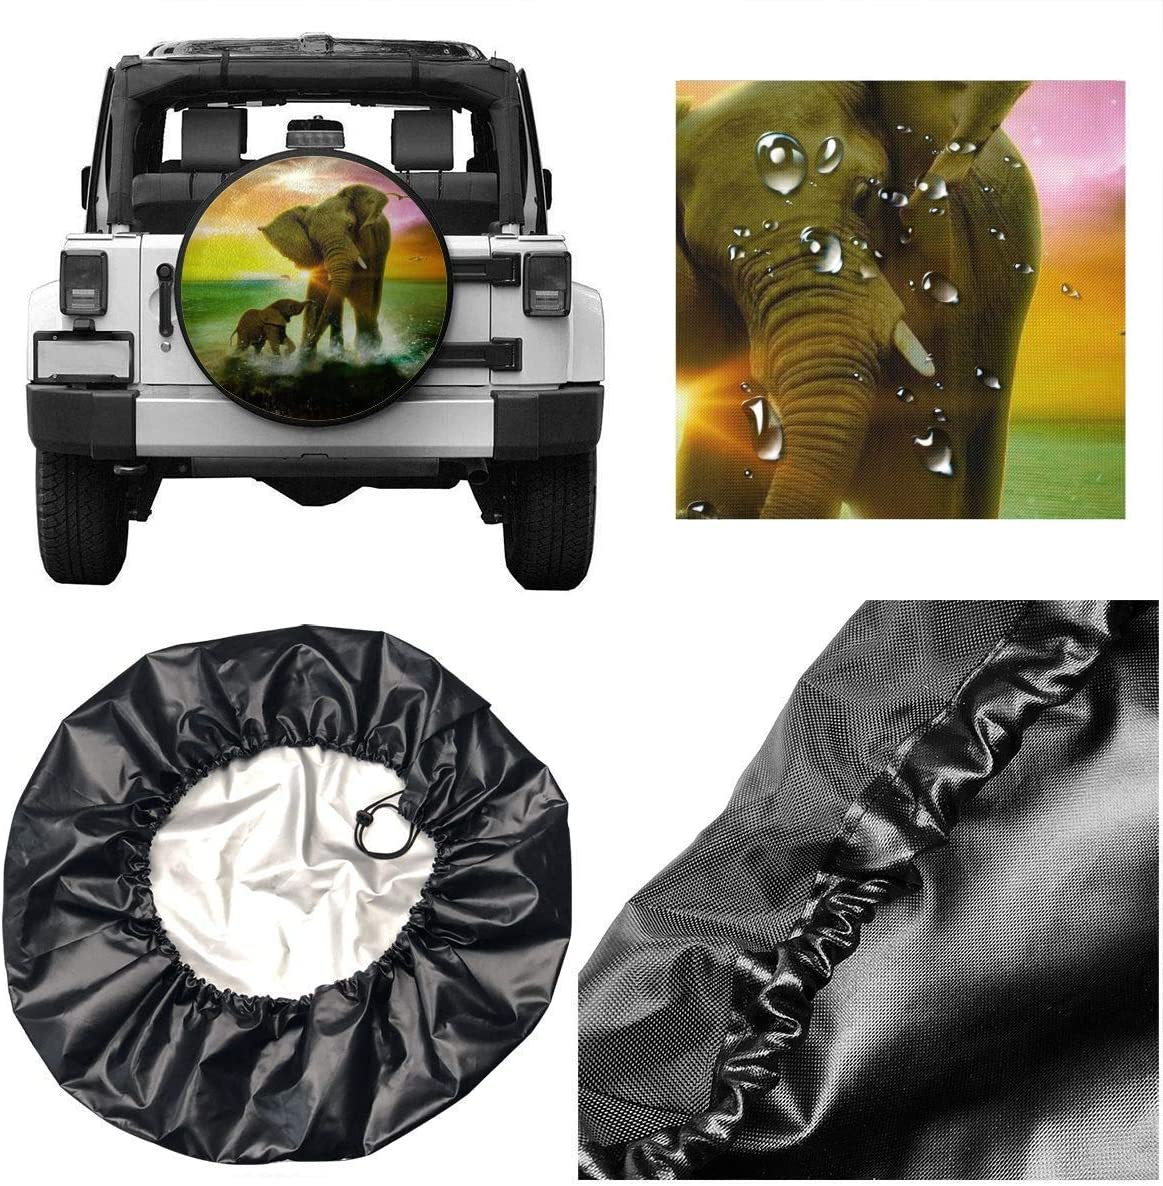 RV Kejbr Reserveradabdeckung Rainproof Protective Cover Love It Elephants Water Proof Universal Reifenabdeckungs Fit for Trailer SUV and Various Vehicles 14 15 16 17 Inch